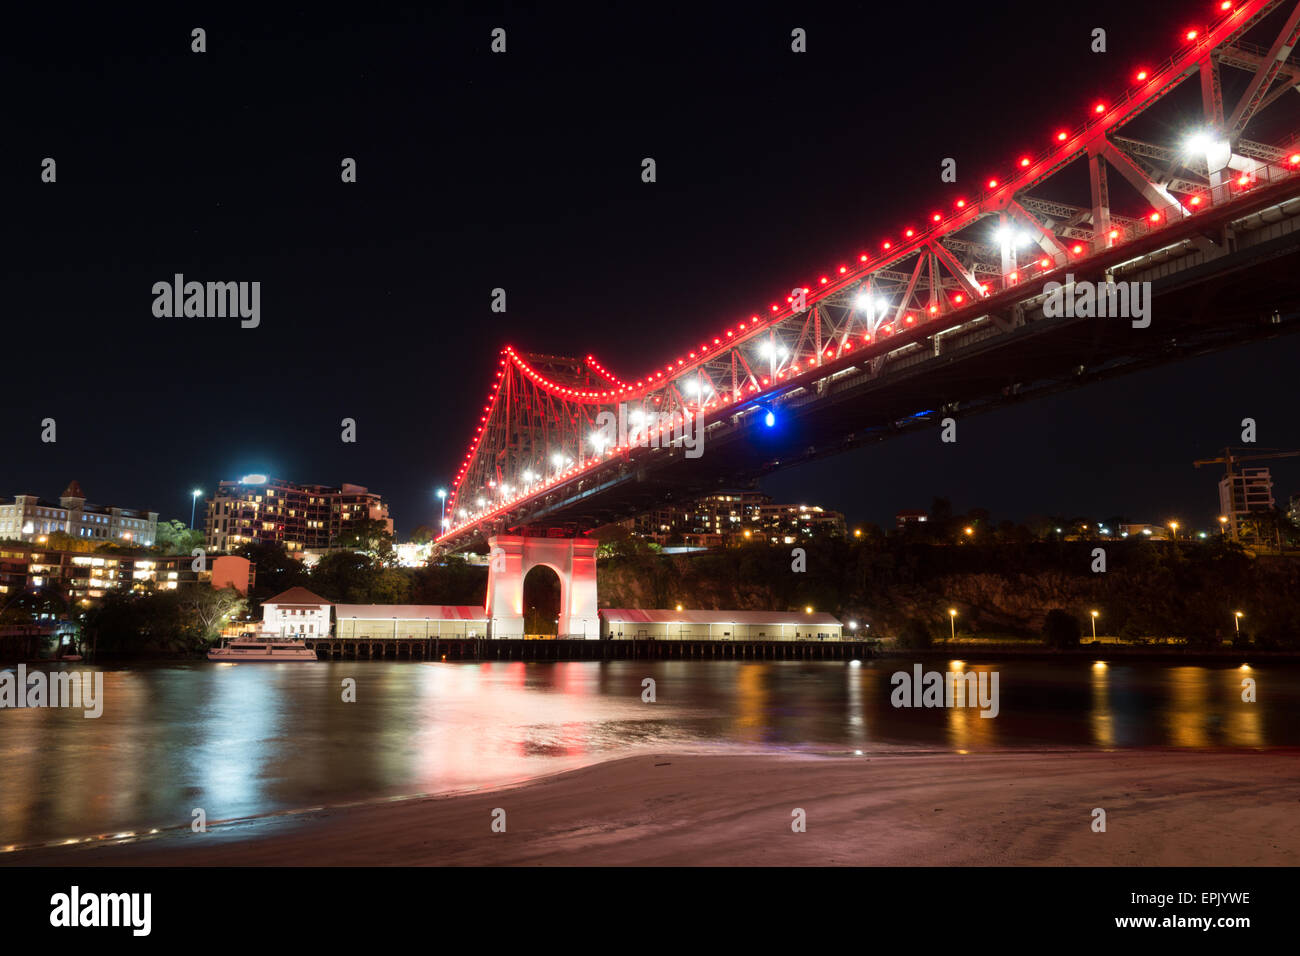 Brisbane Story Bridge in Red with River Bank - Stock Image